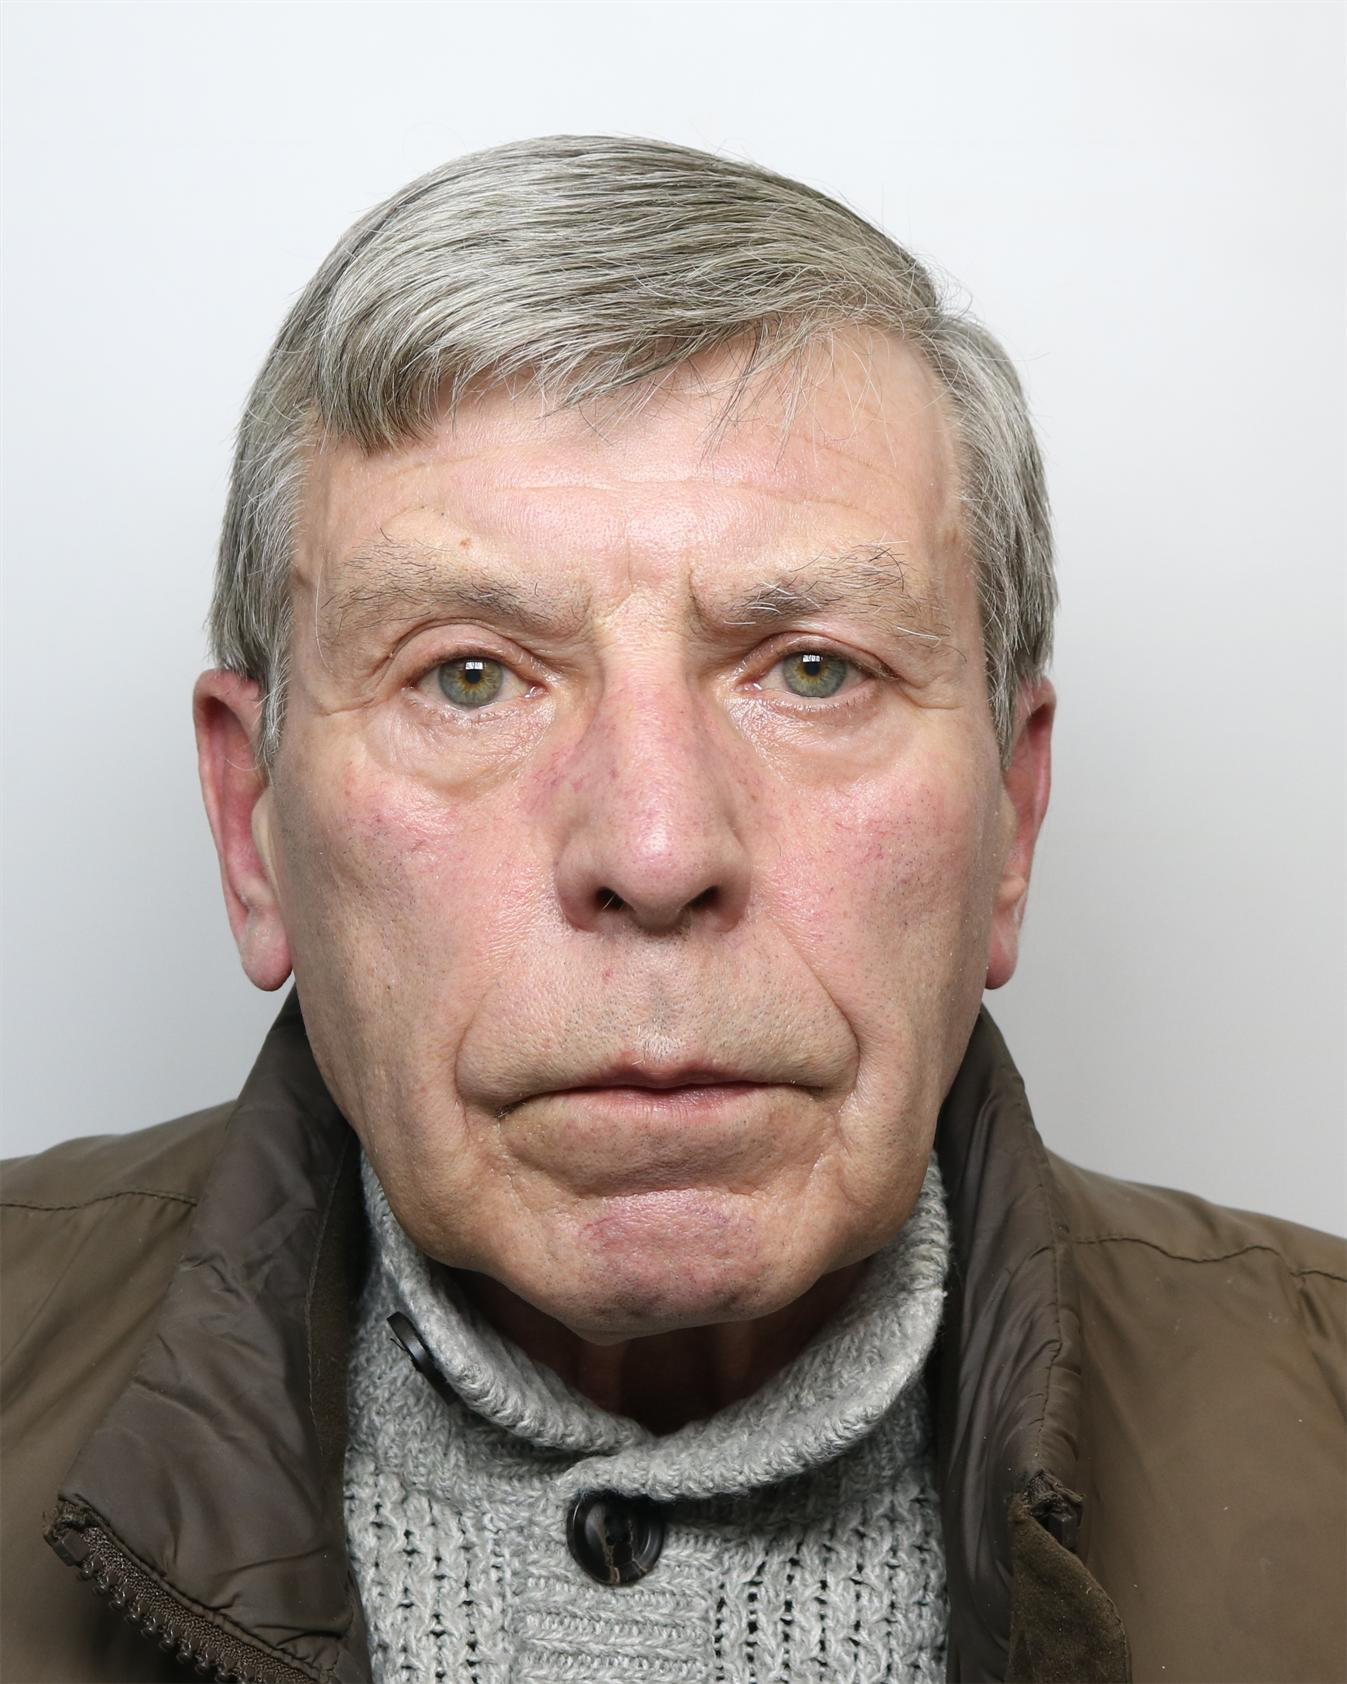 Wife of paedophile Ian Roberts said she didn't know him when offending took place